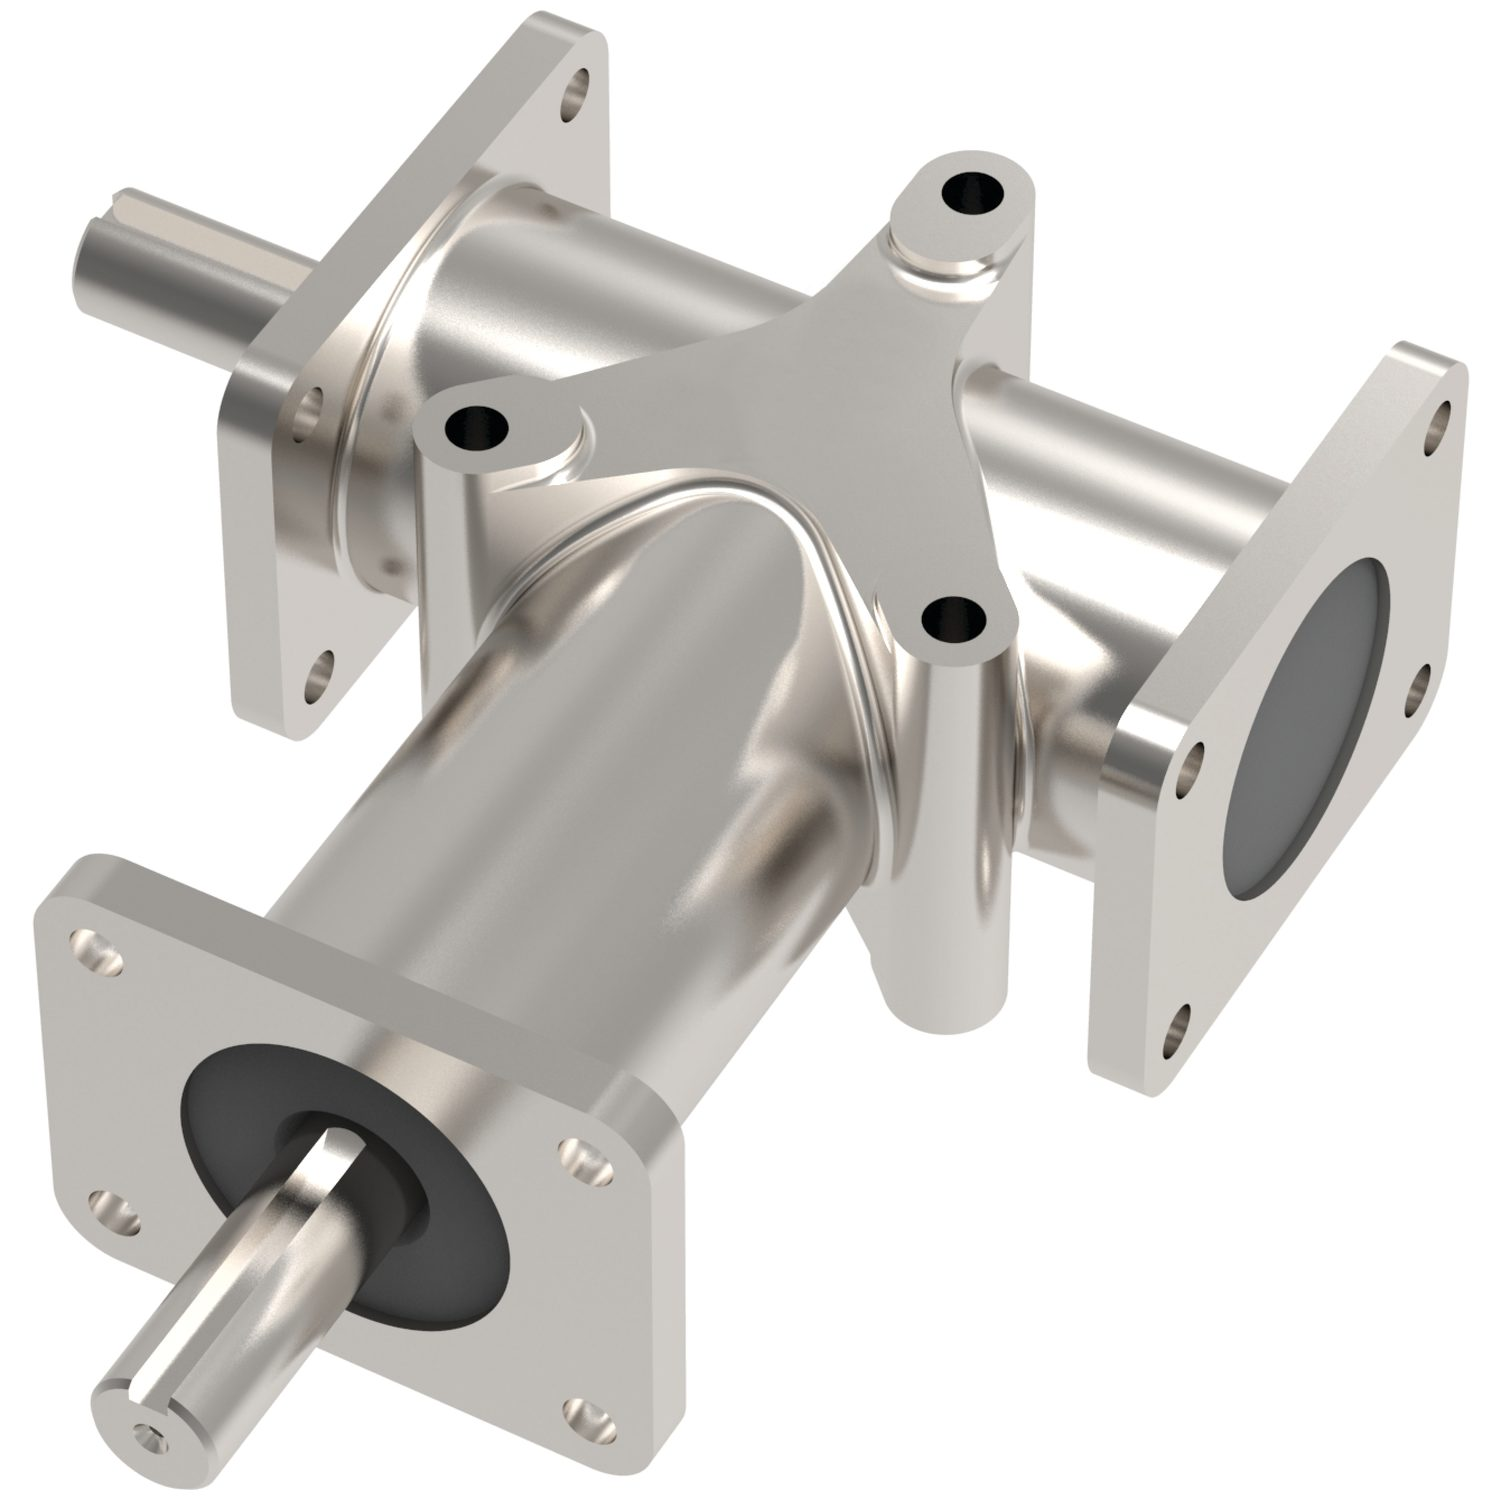 R2358 - Stainless Right Angle Drives - 2 Shafts